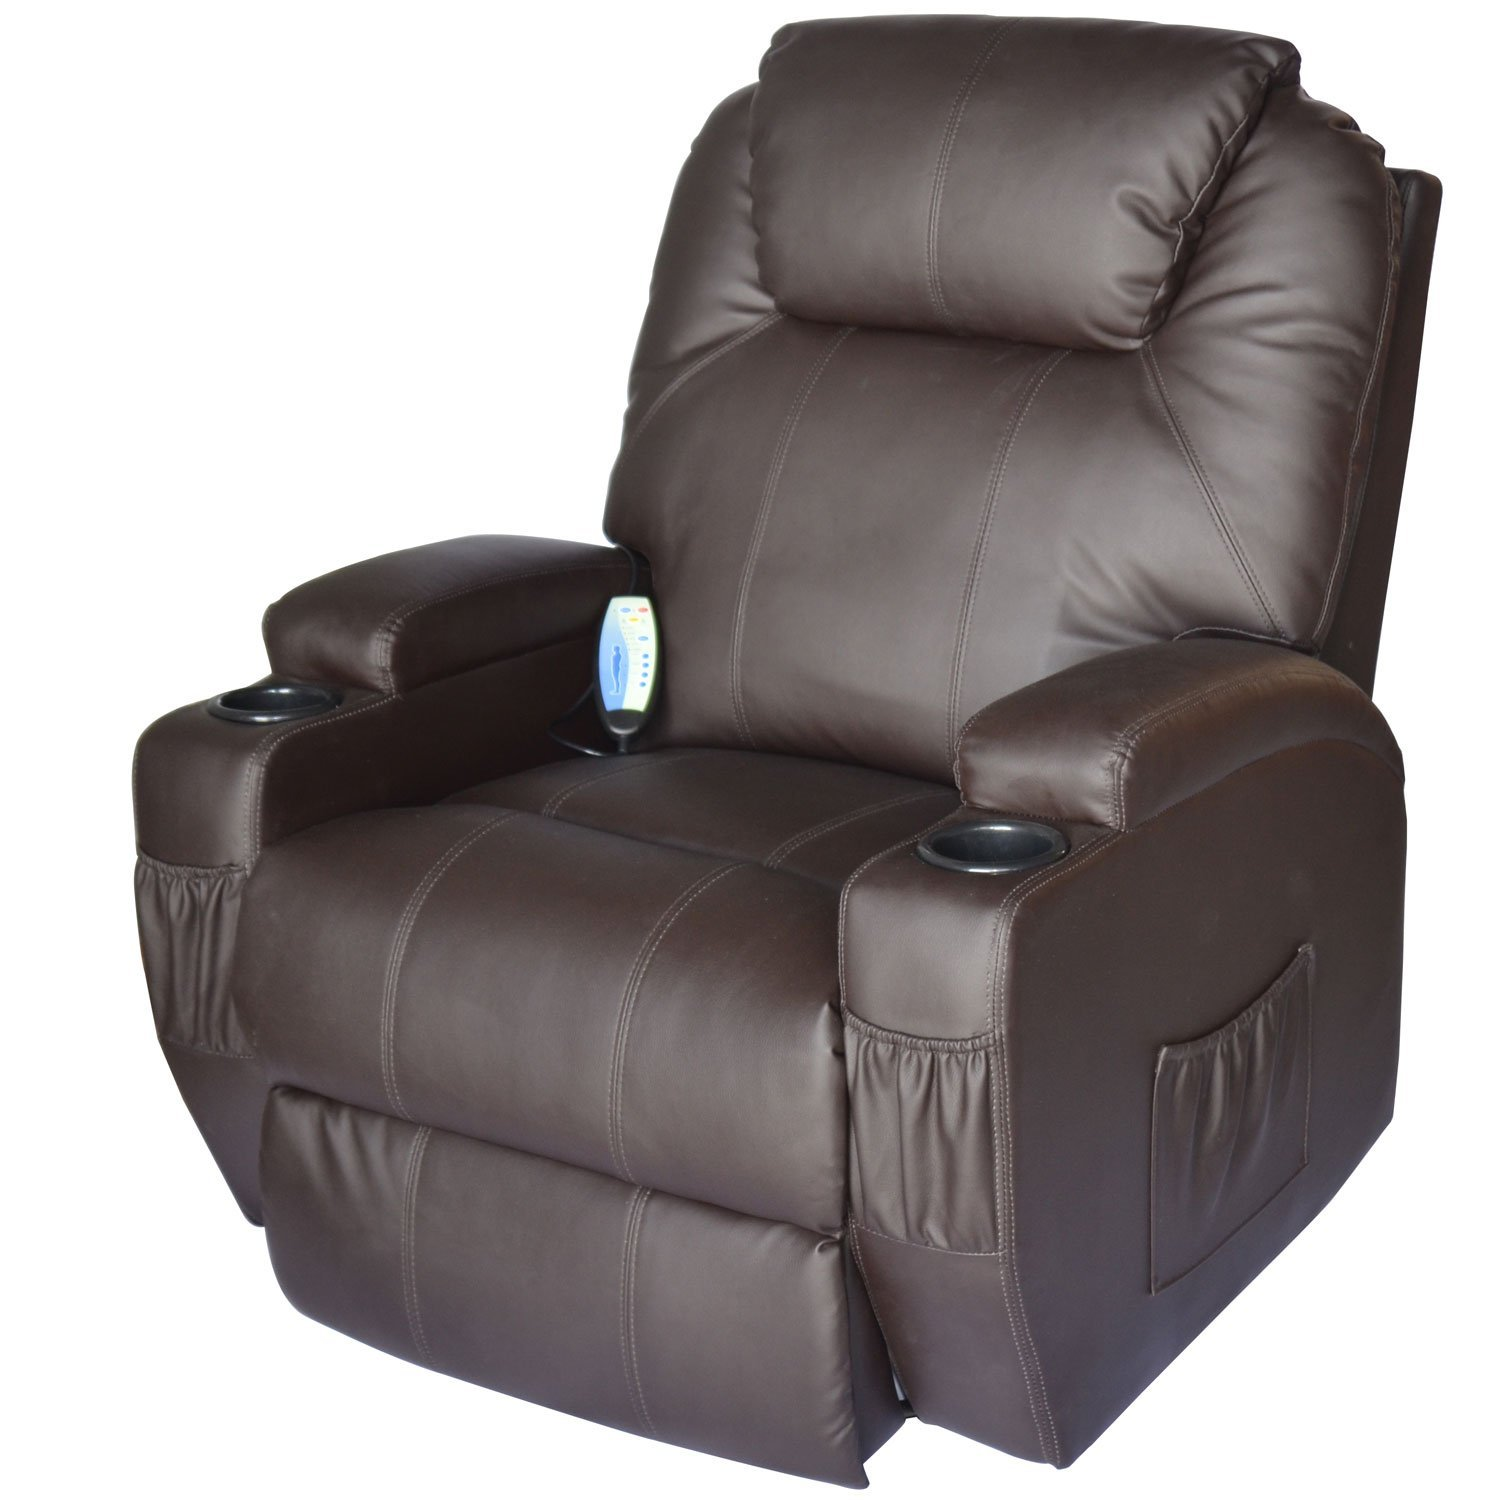 The Top Rated Recliner Brands